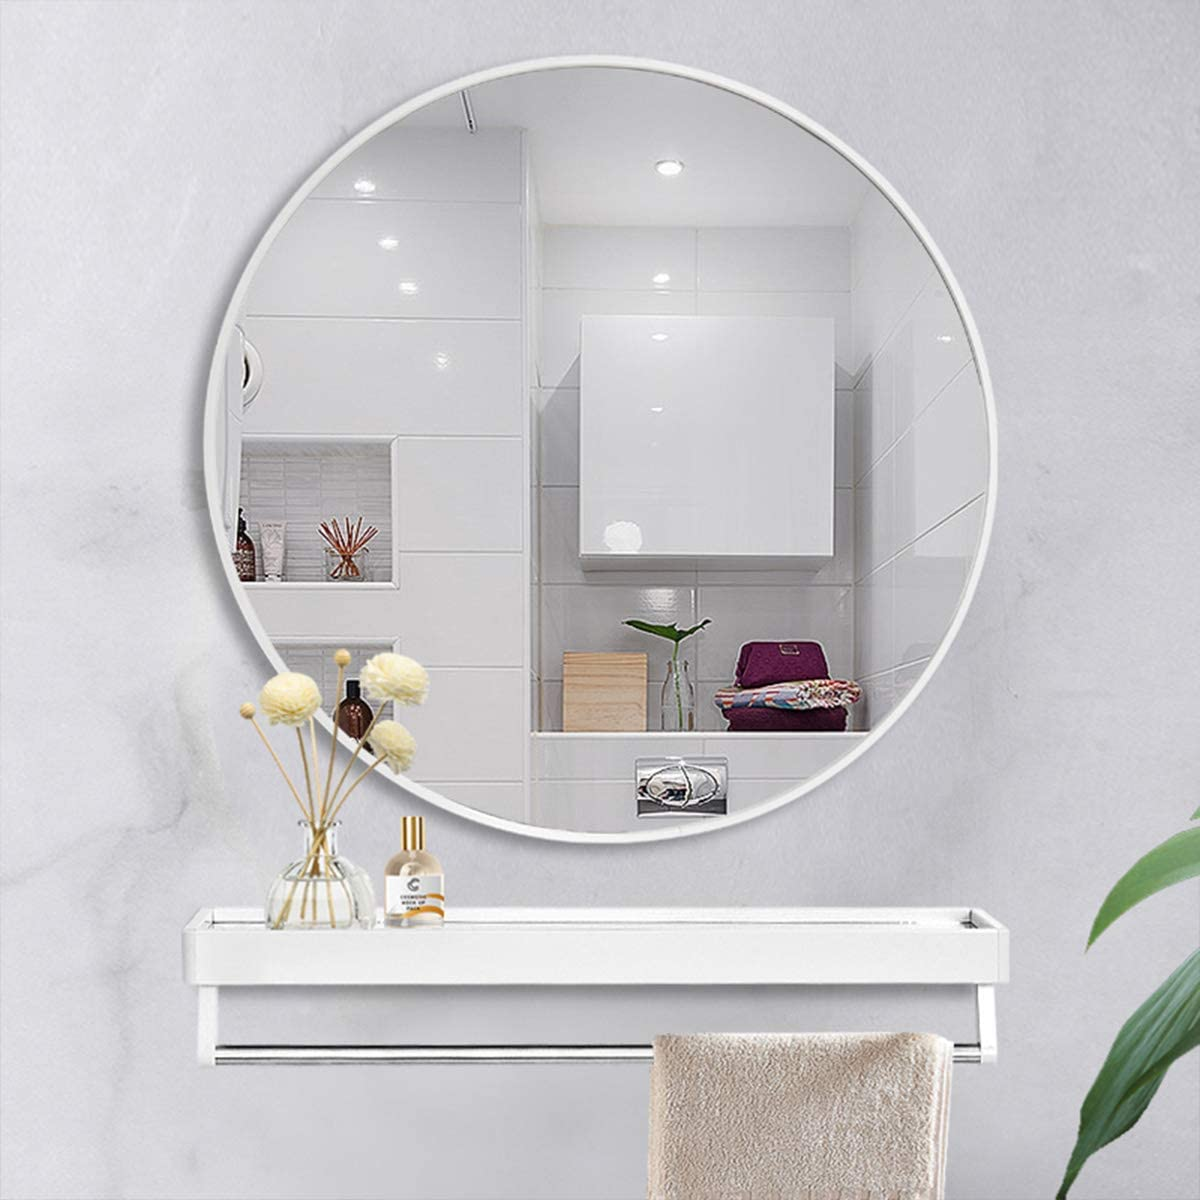 OGCAU White Round Mirrors for Wall Decor 32 Inch Circle Mirror White Metal Round Wall Mirror for Bathroom, Entry, Dining Room, Living Room Crafts. White Round Mirror for Wall, Vanity Mirror